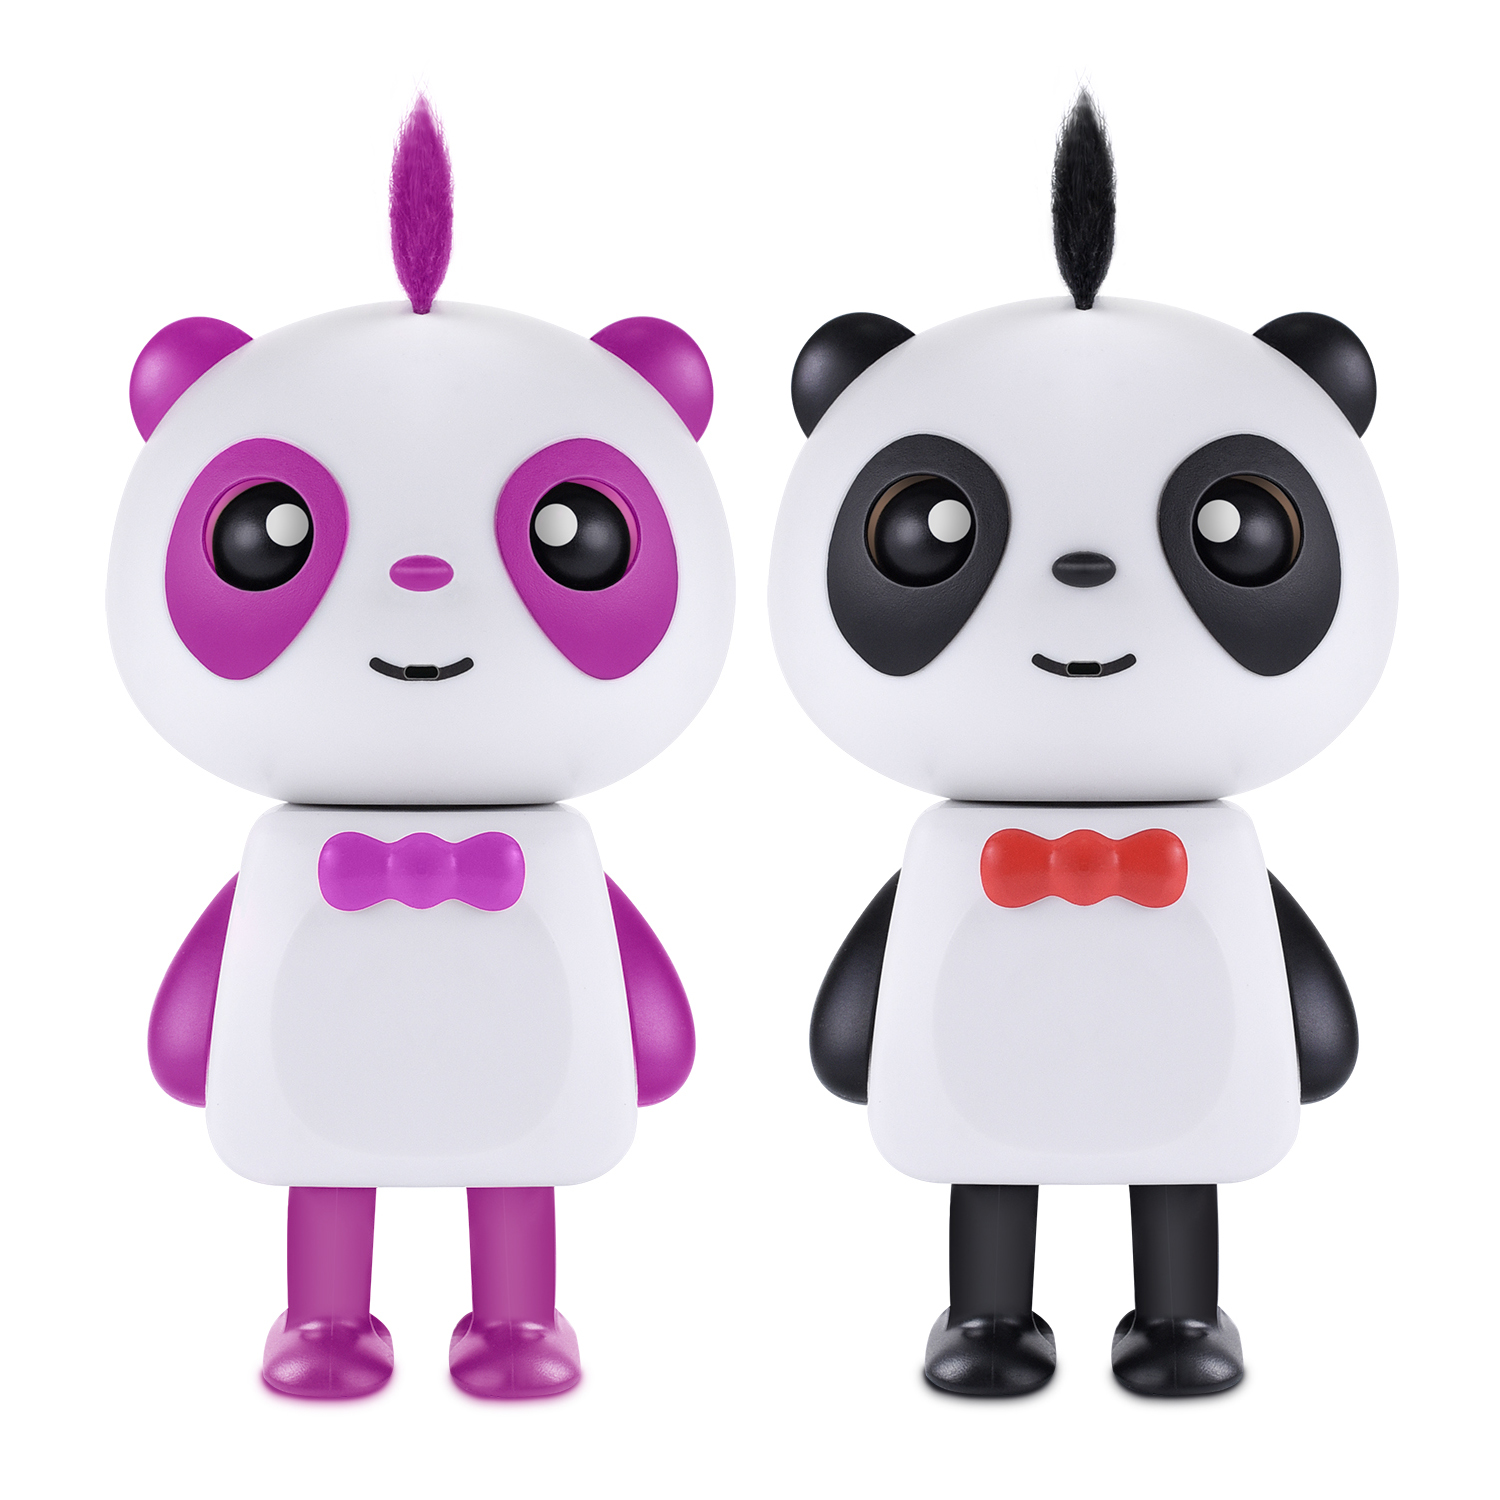 Cute Swing Body Panda Vocal Musical Toy Sound Toys Kids Sleep Music Player Baby Interactive Panda Fun Birthday Gift Bluetooth